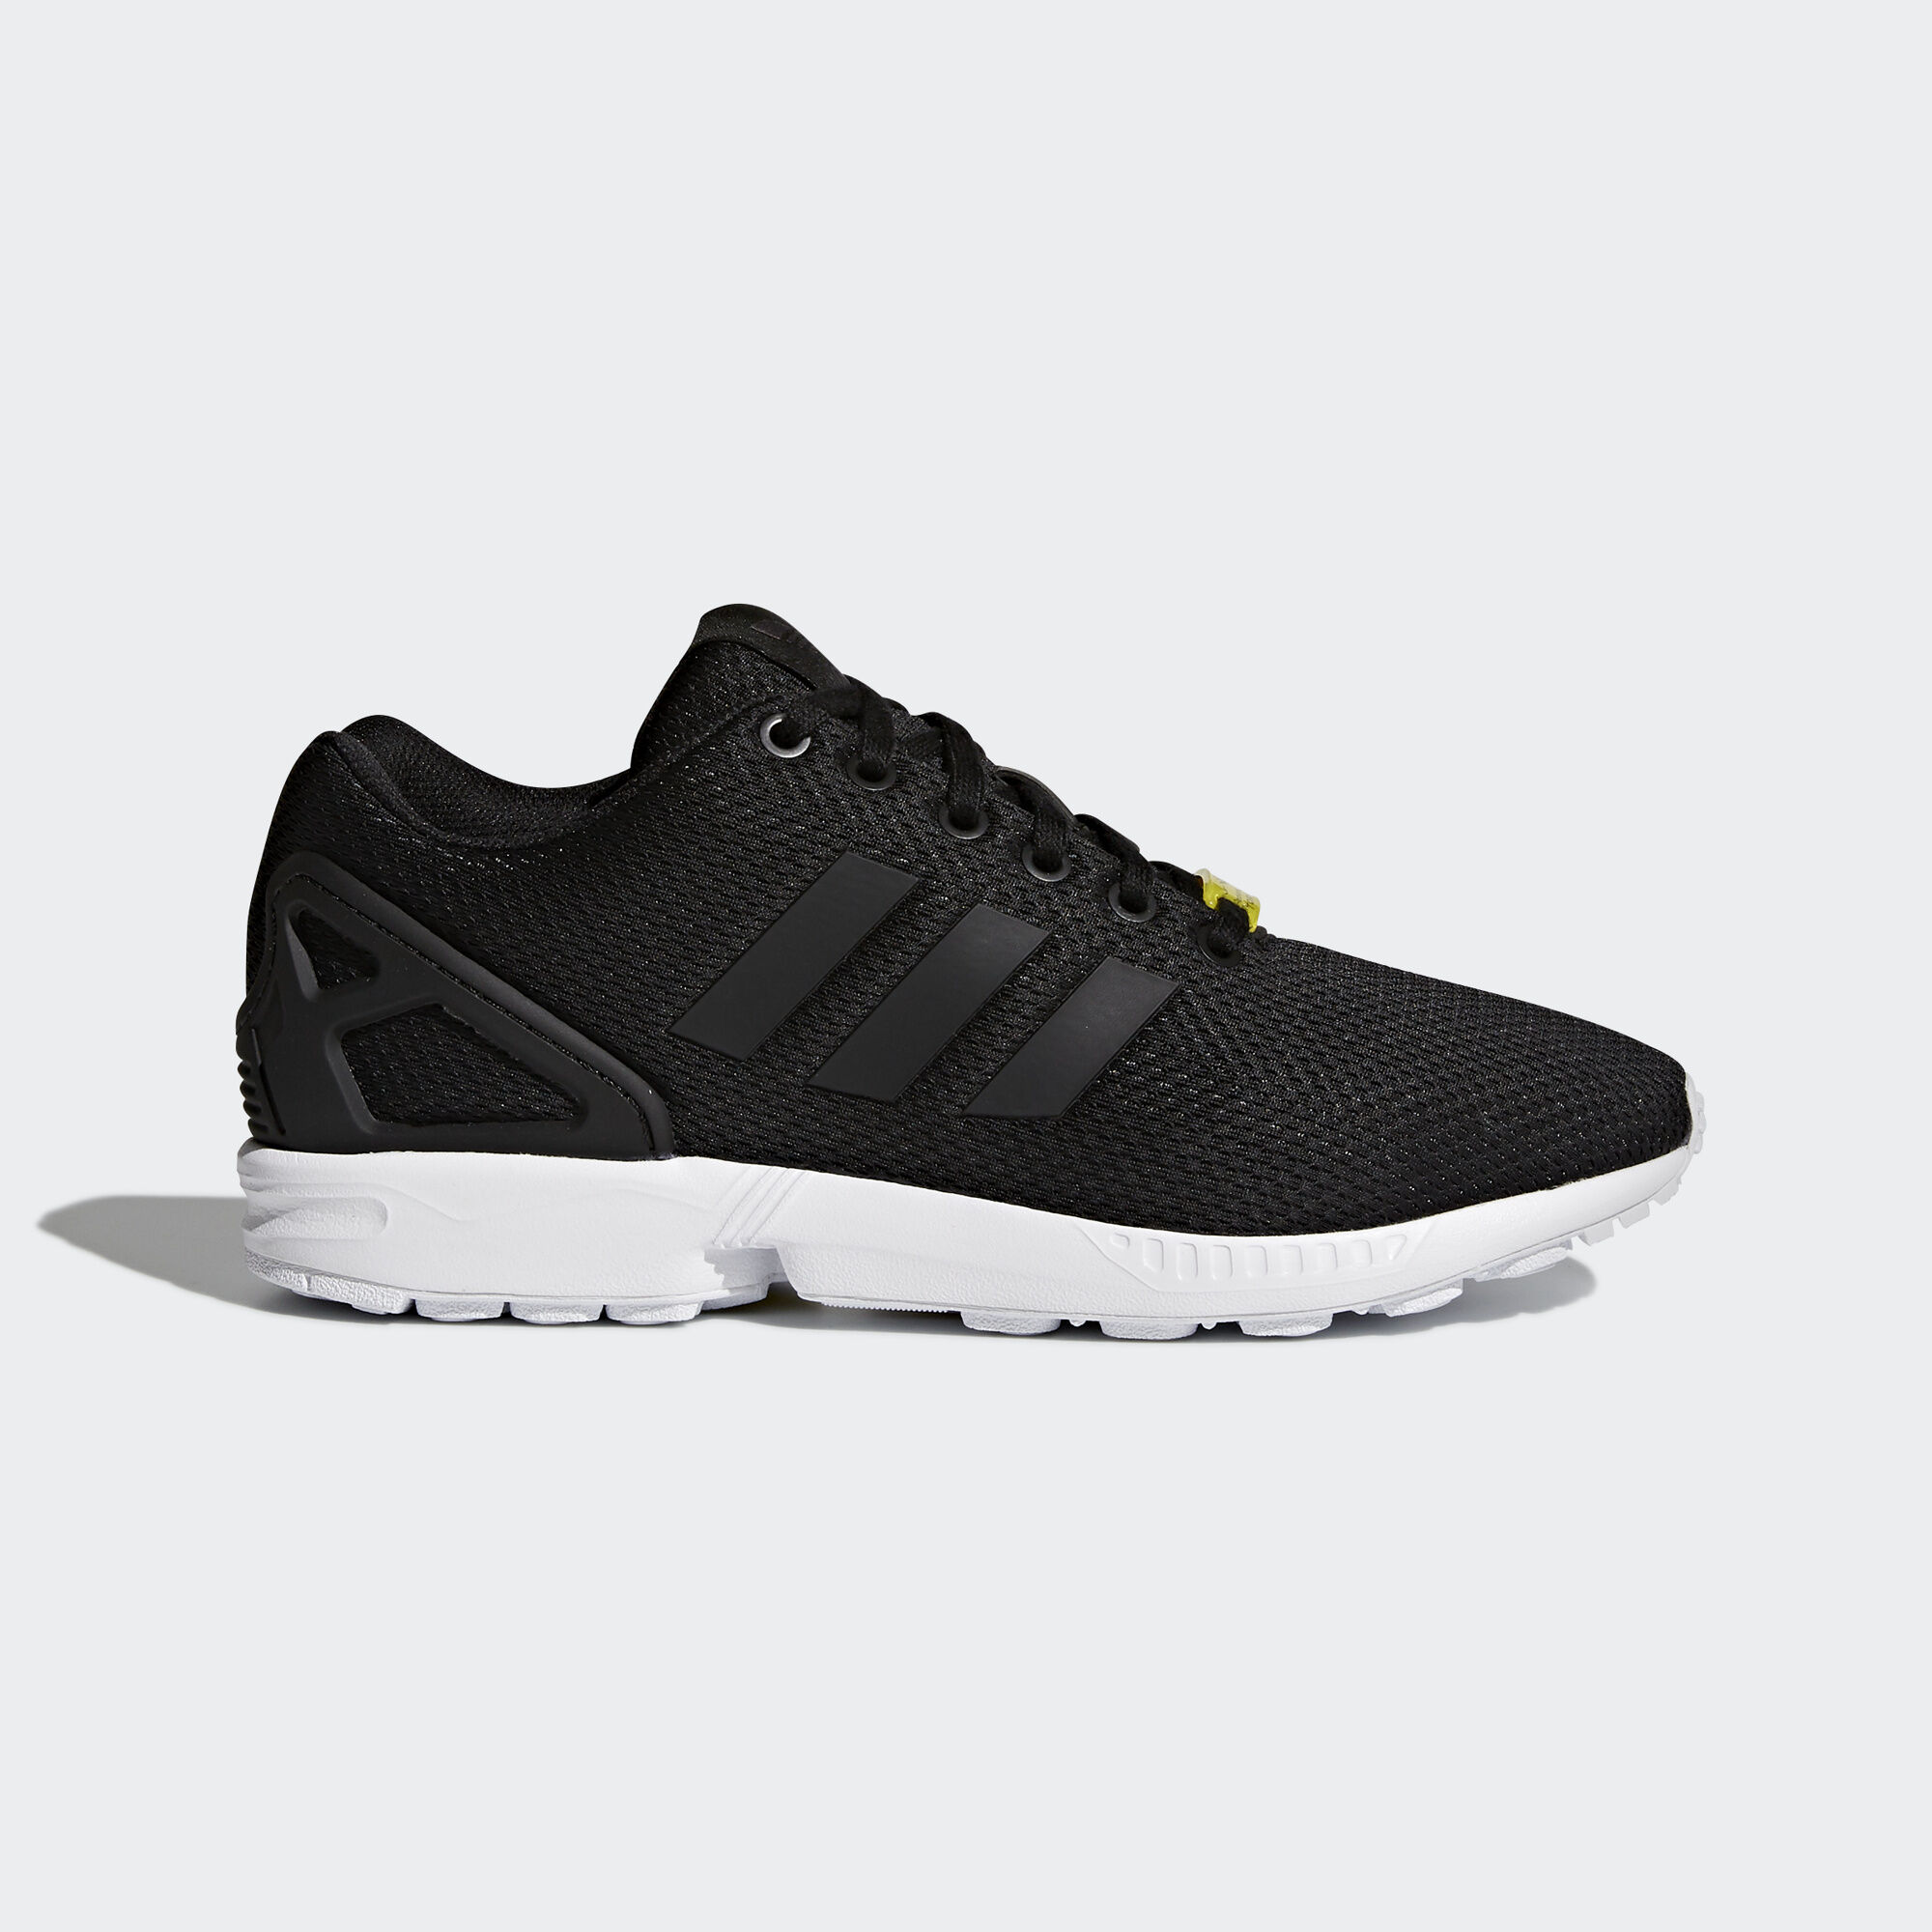 Adidas Zx Flux Black Multicolor